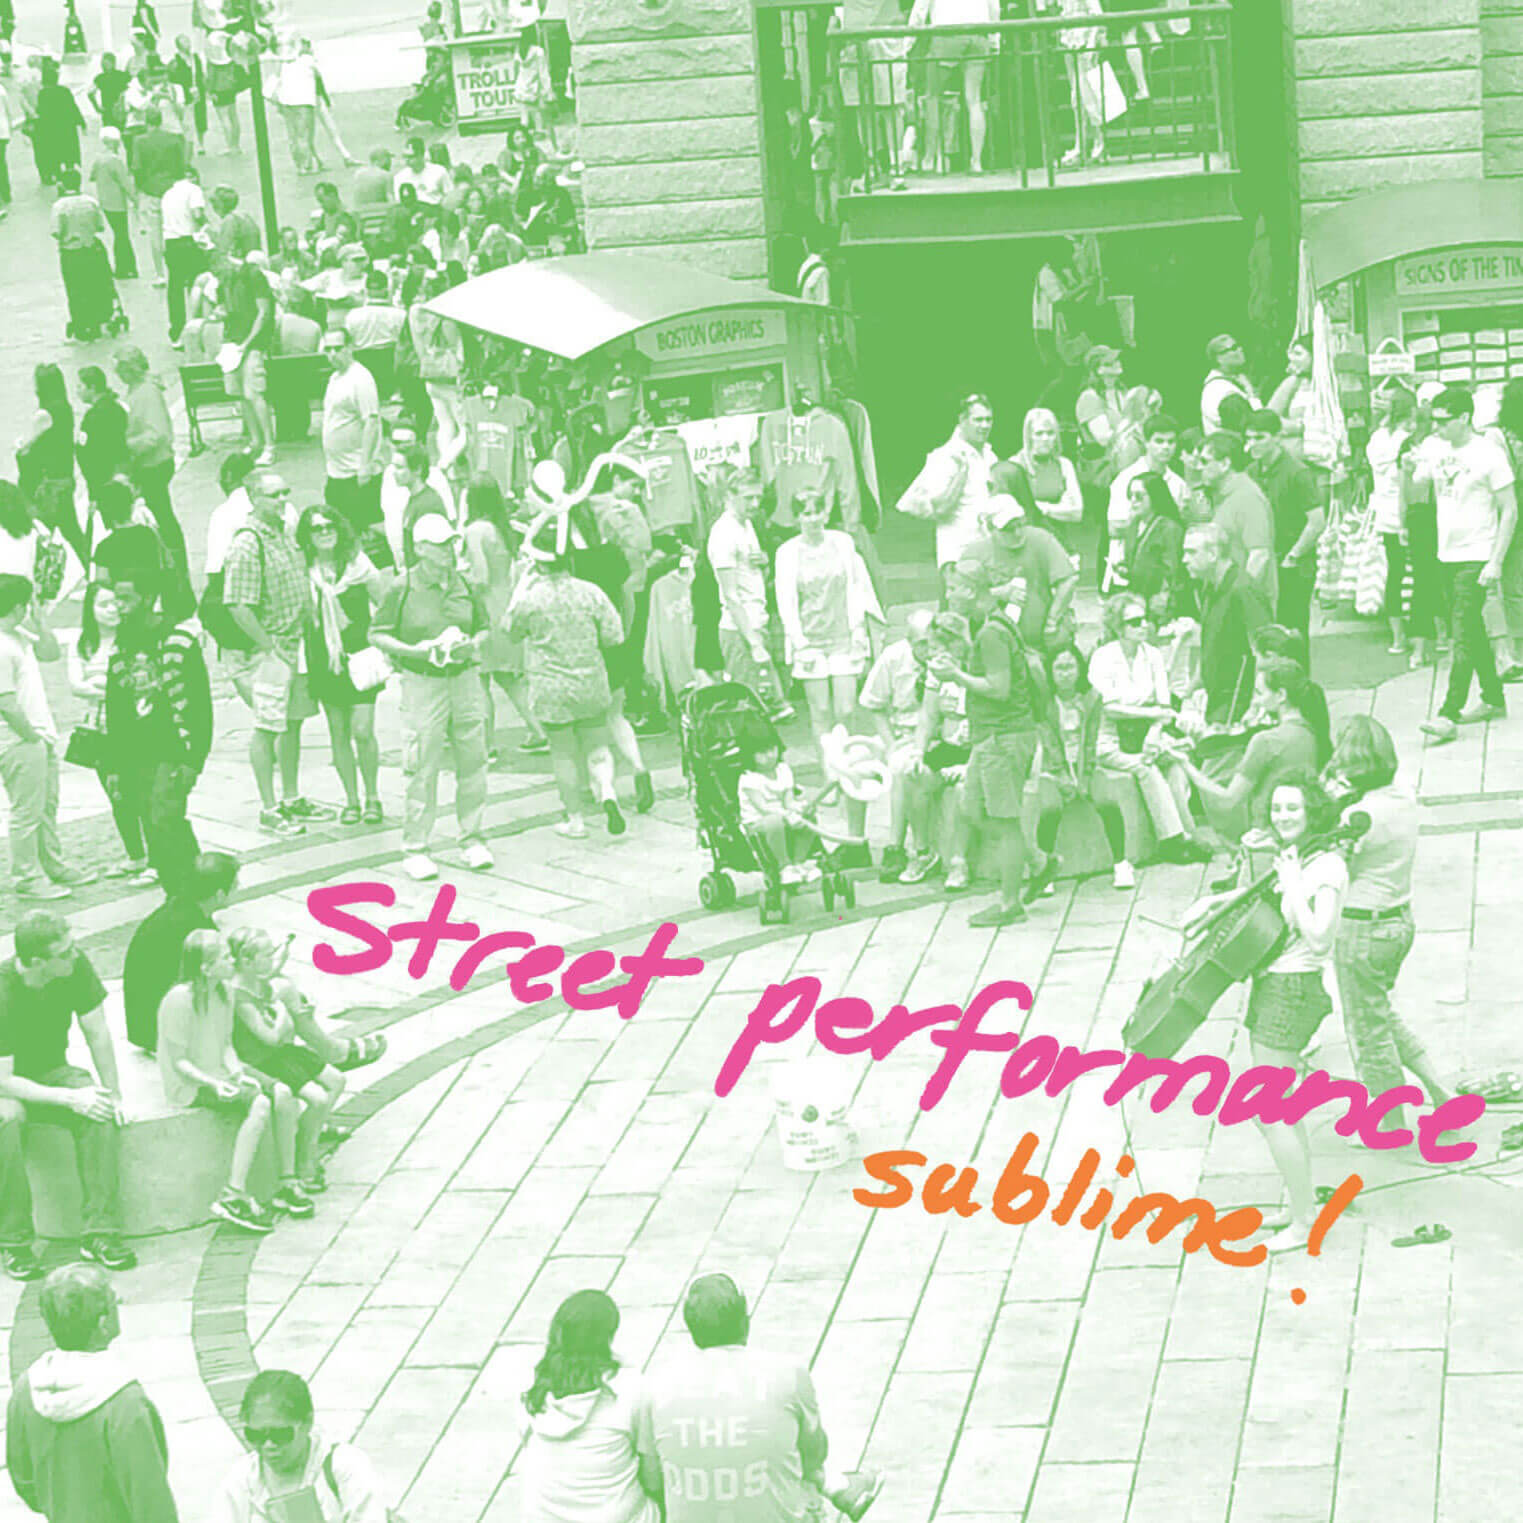 STREET PERFORMANCE SUBLIME